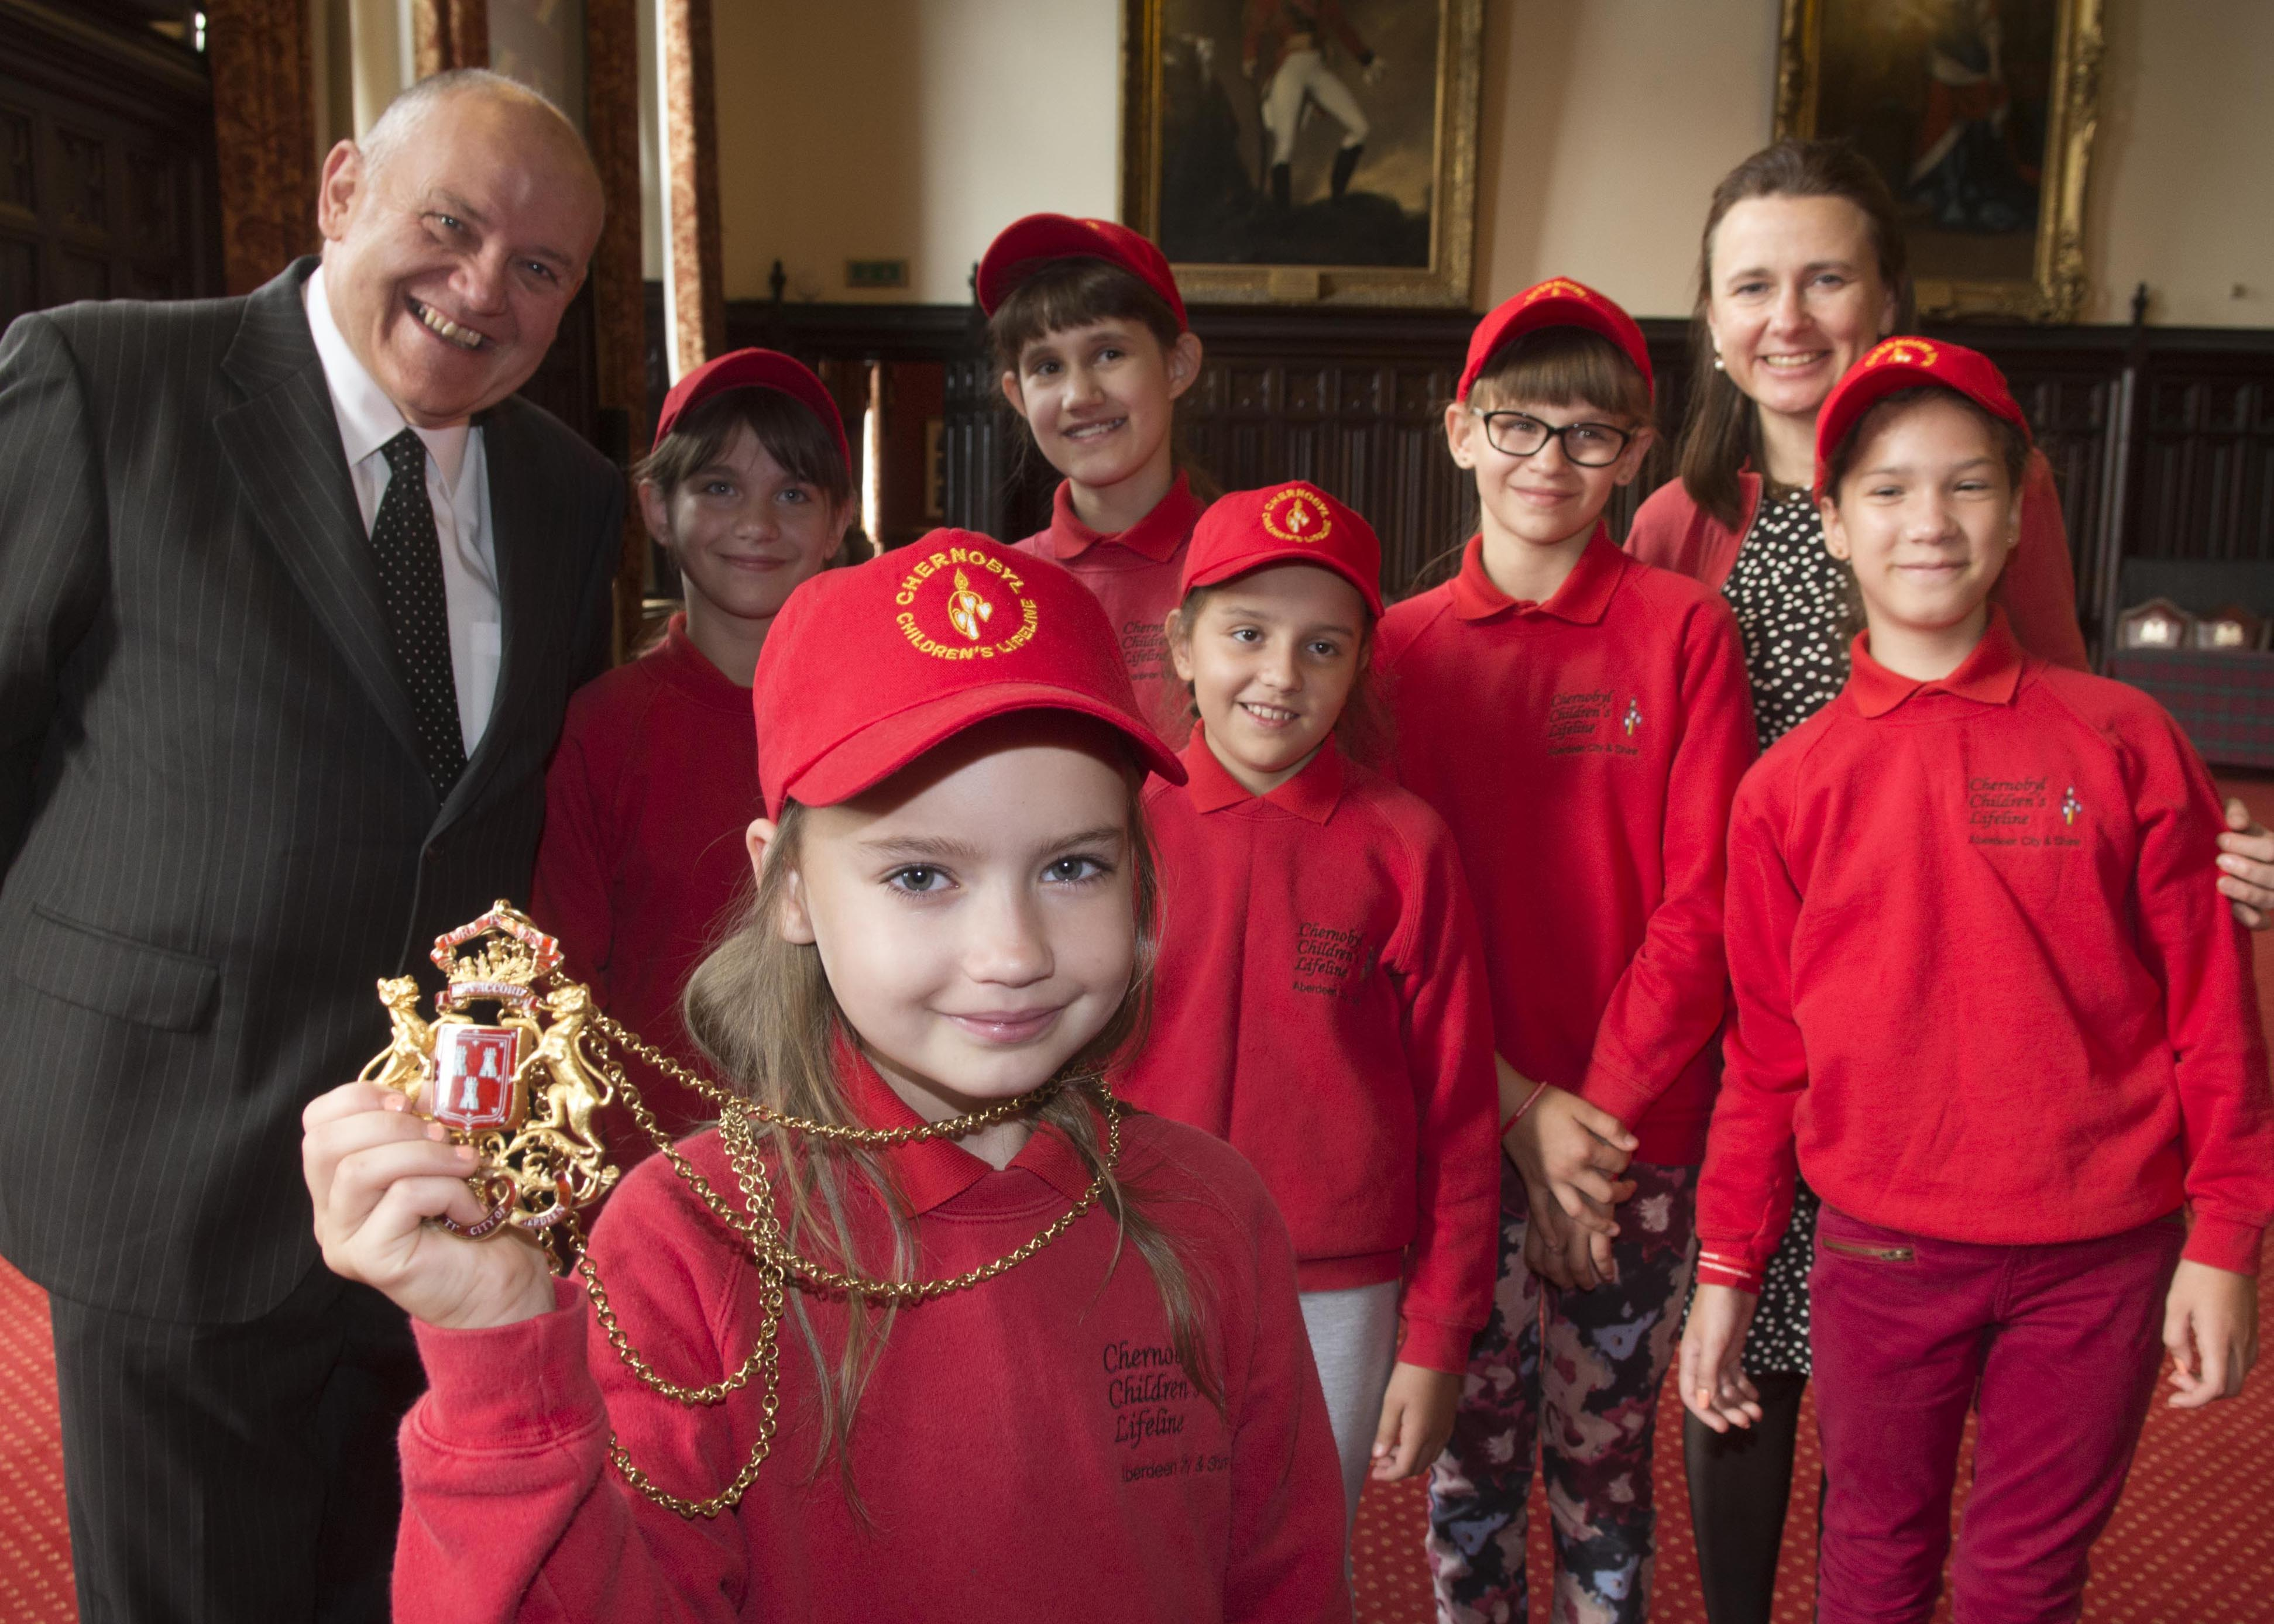 Aberdeen Lord Provost Barney Crockett with children from Gomel who visited the Town House during their time in Aberdeen last year